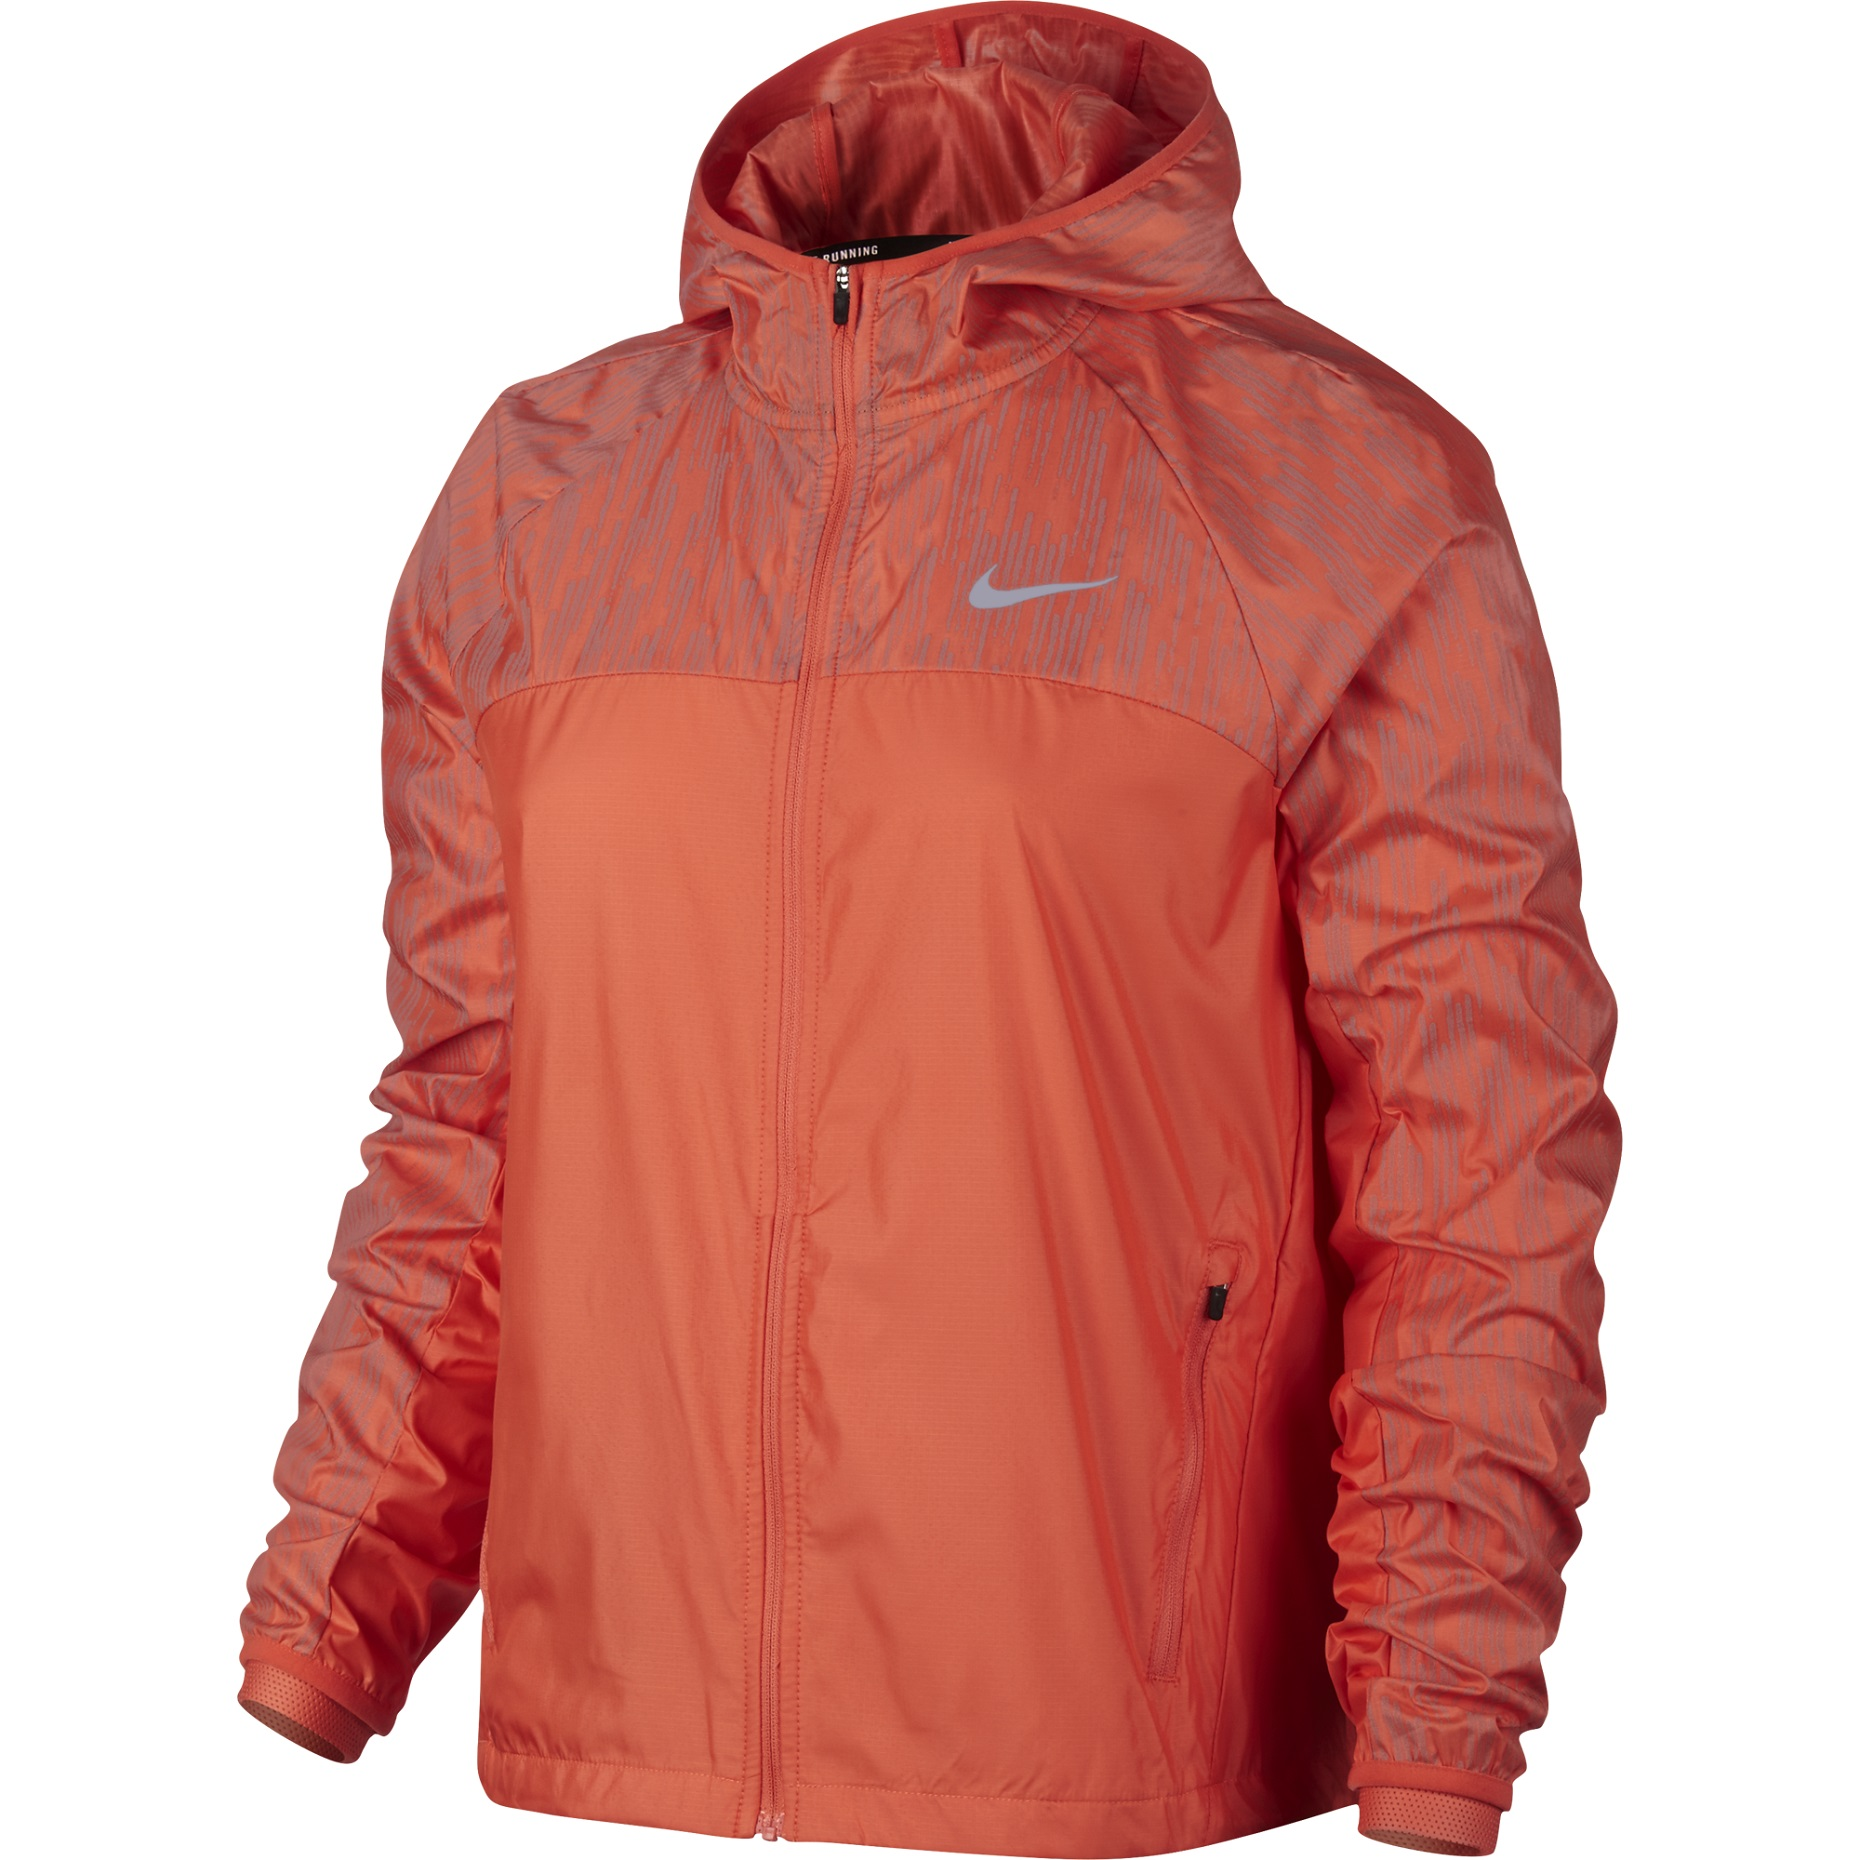 Nike Shield Flash Women's Running Jacket Coral